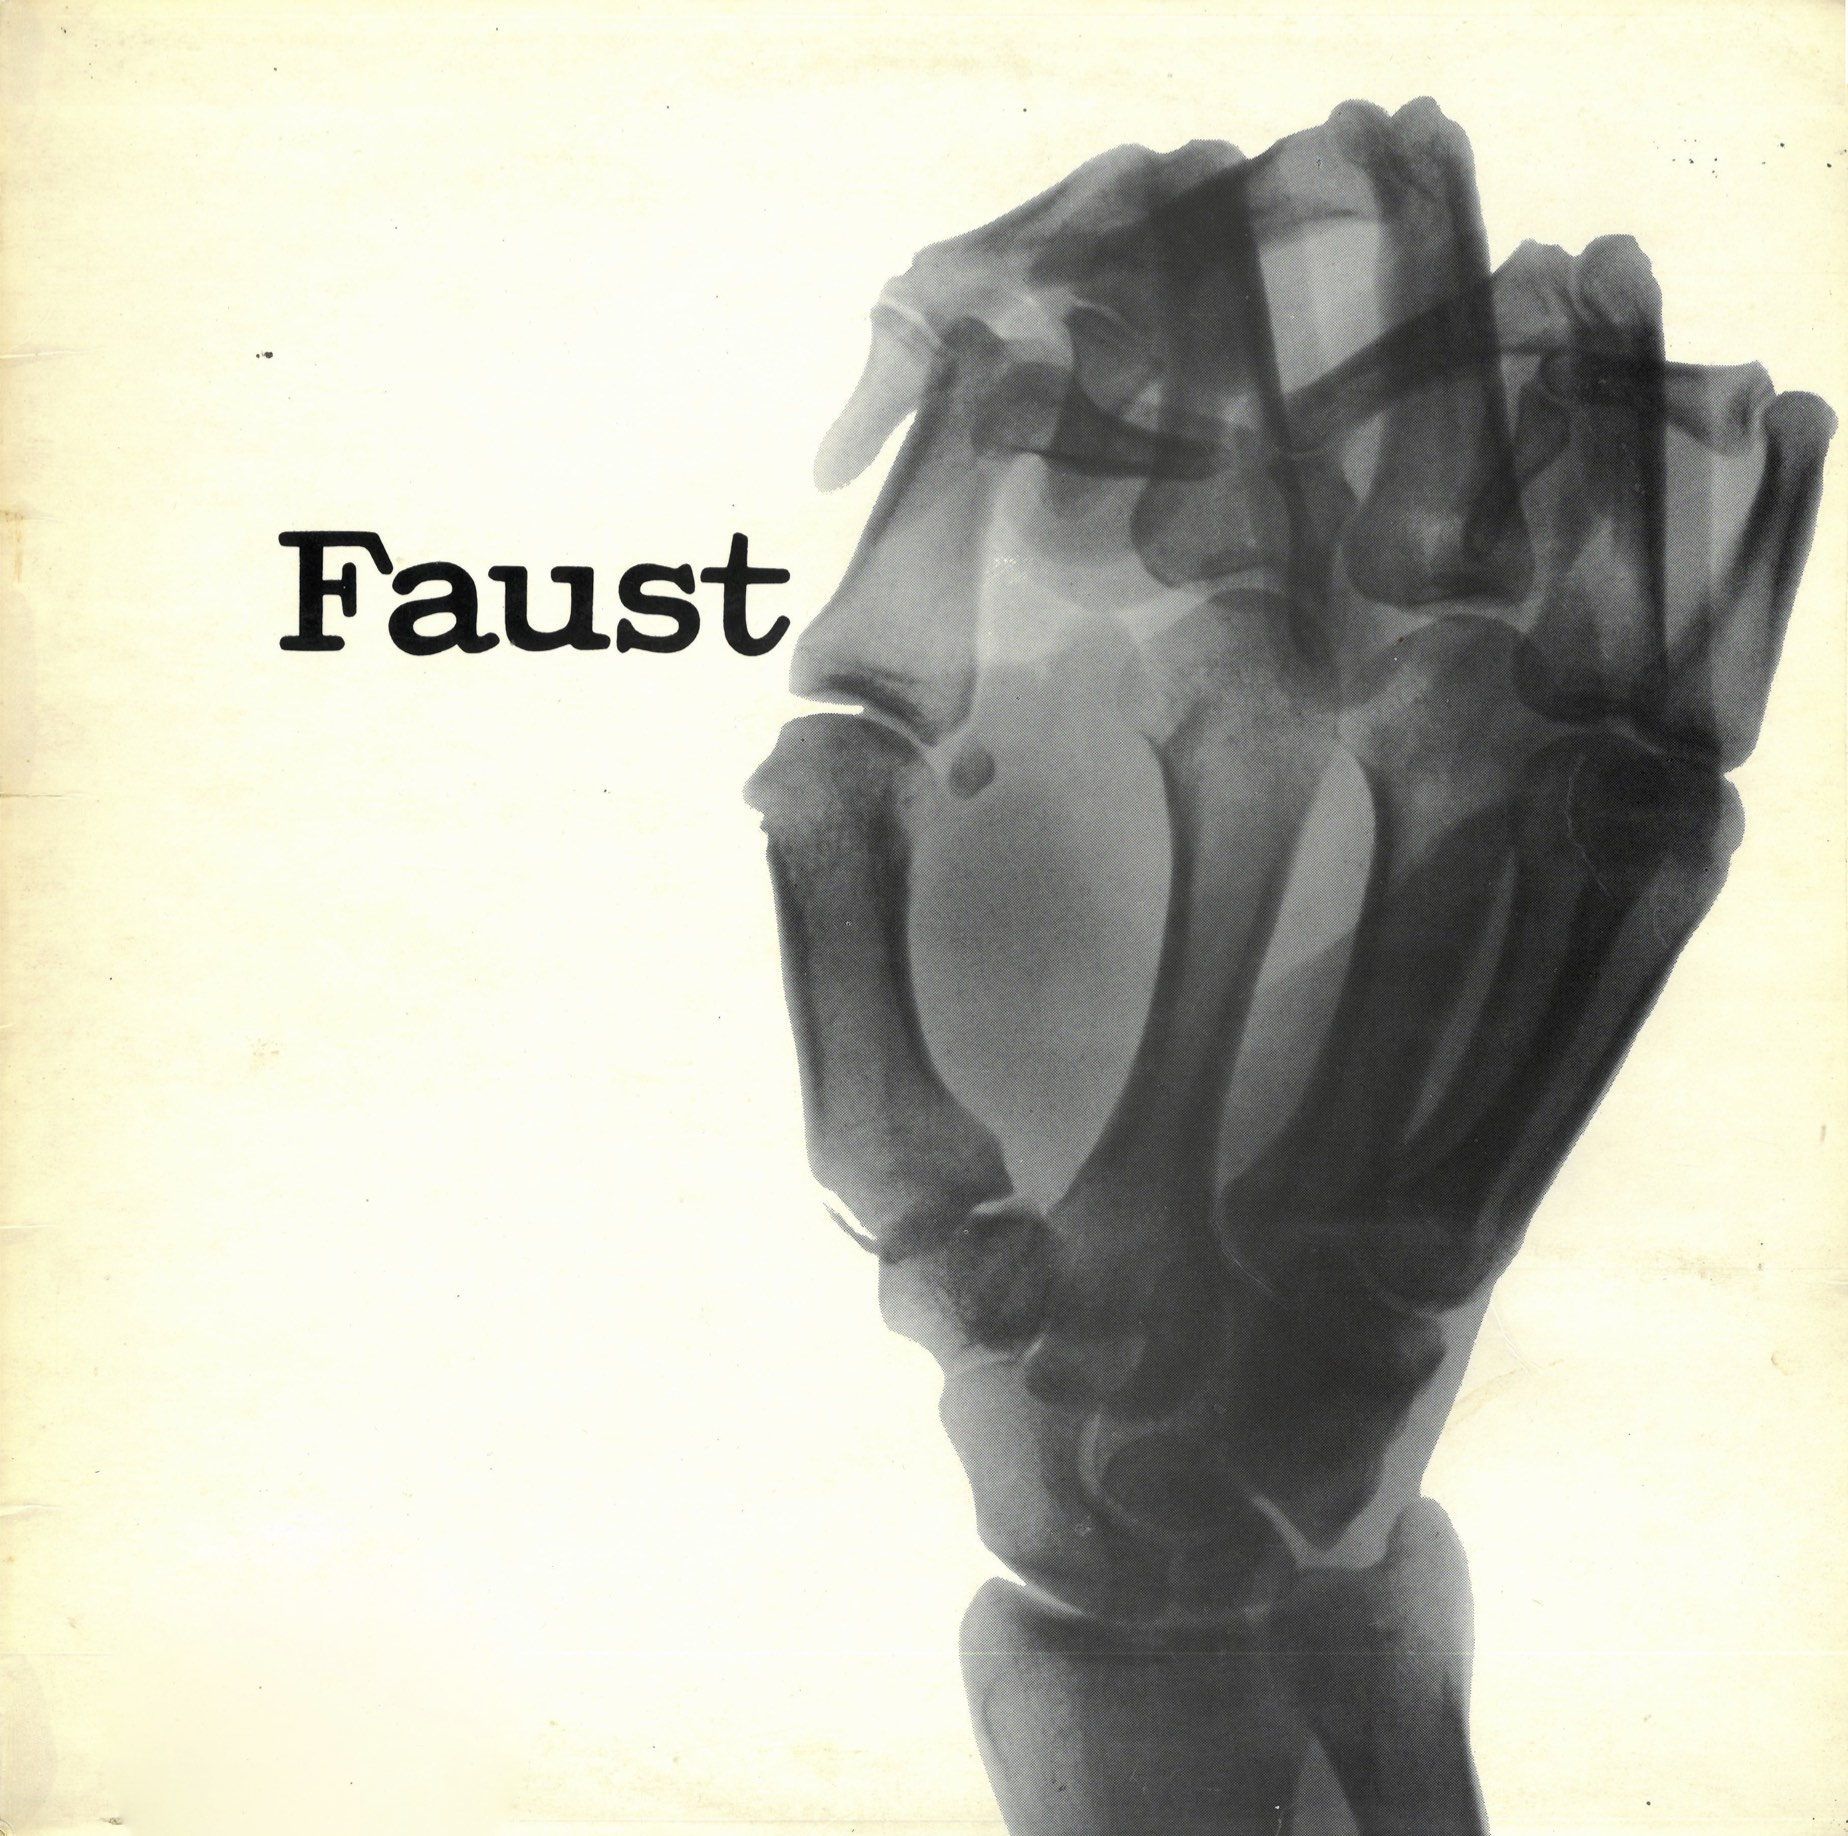 1996 - Faust